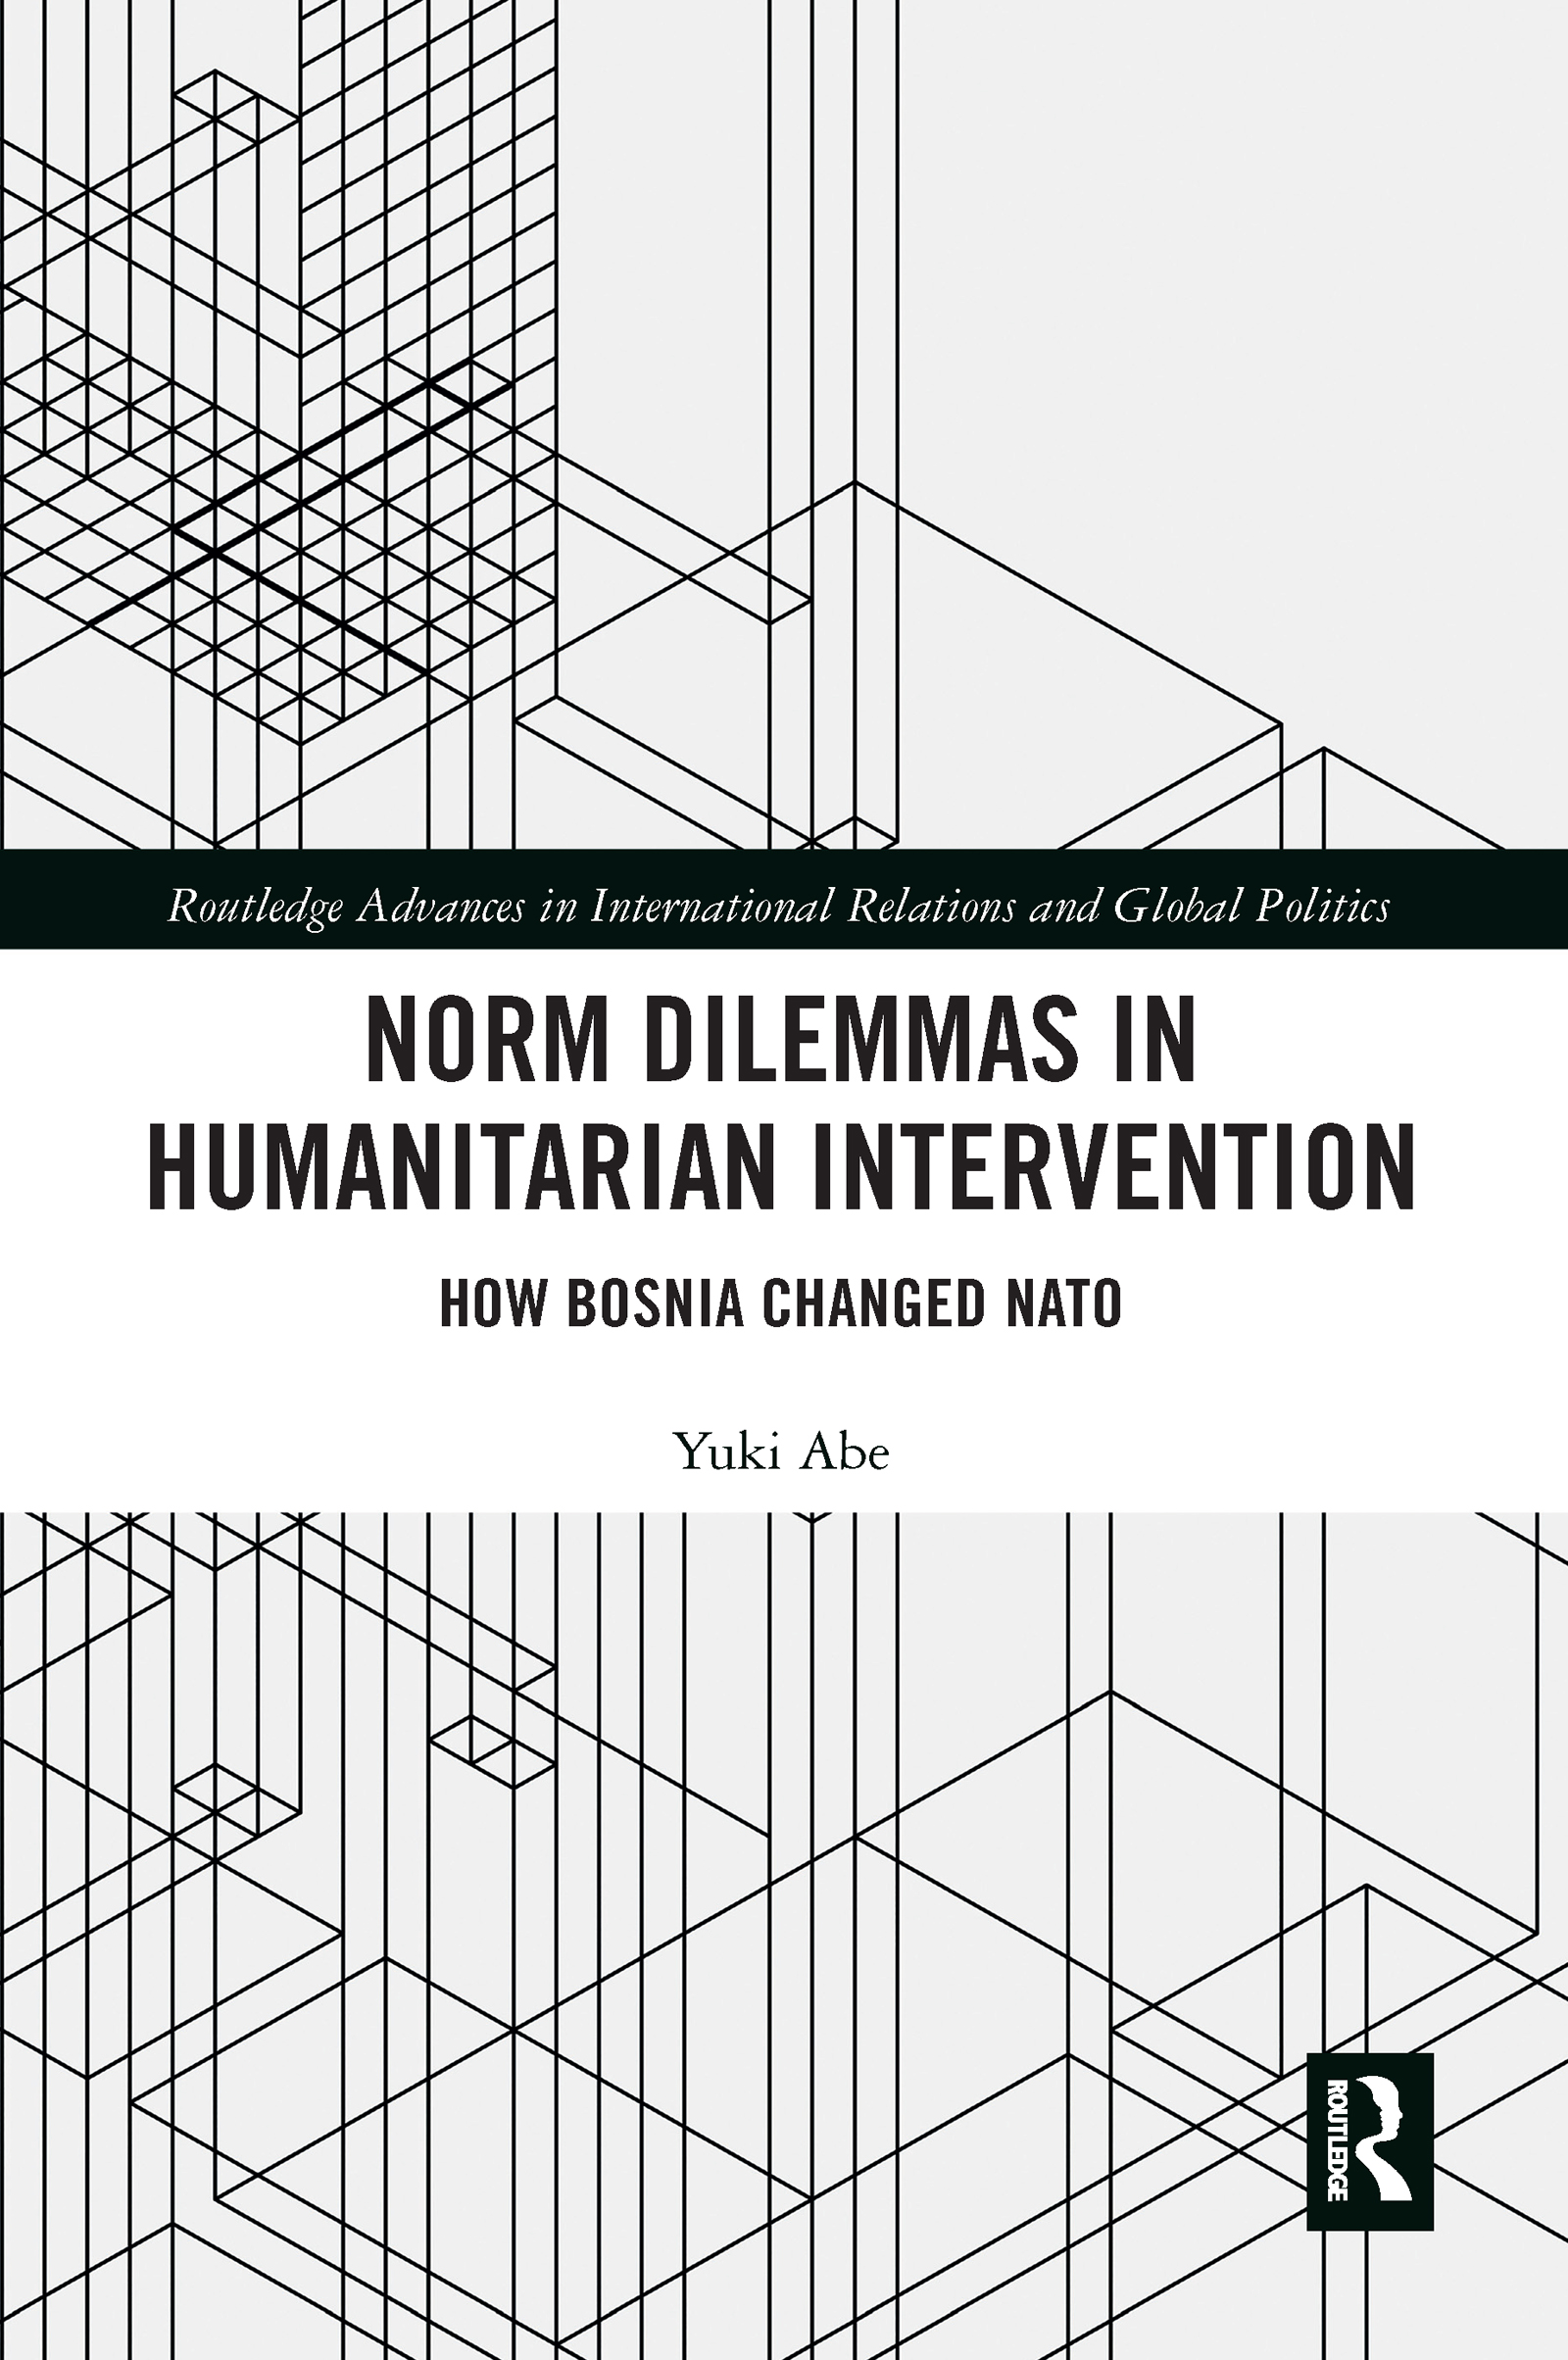 Norm Dilemmas in Humanitarian Intervention